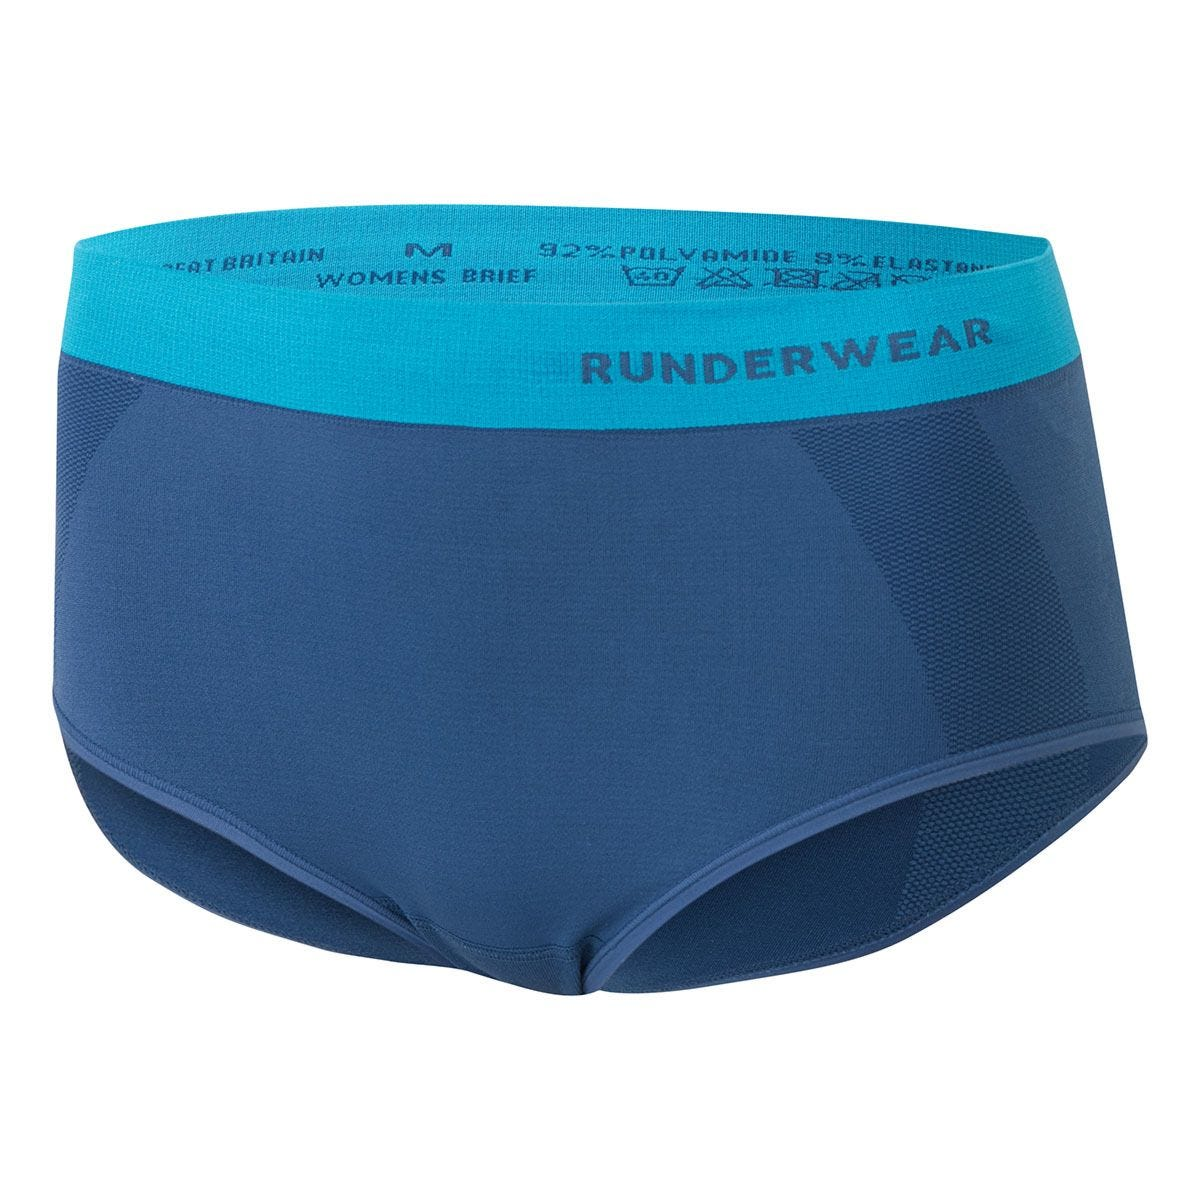 Runderwear Women's Running Briefs Extra Extra Large - Blue